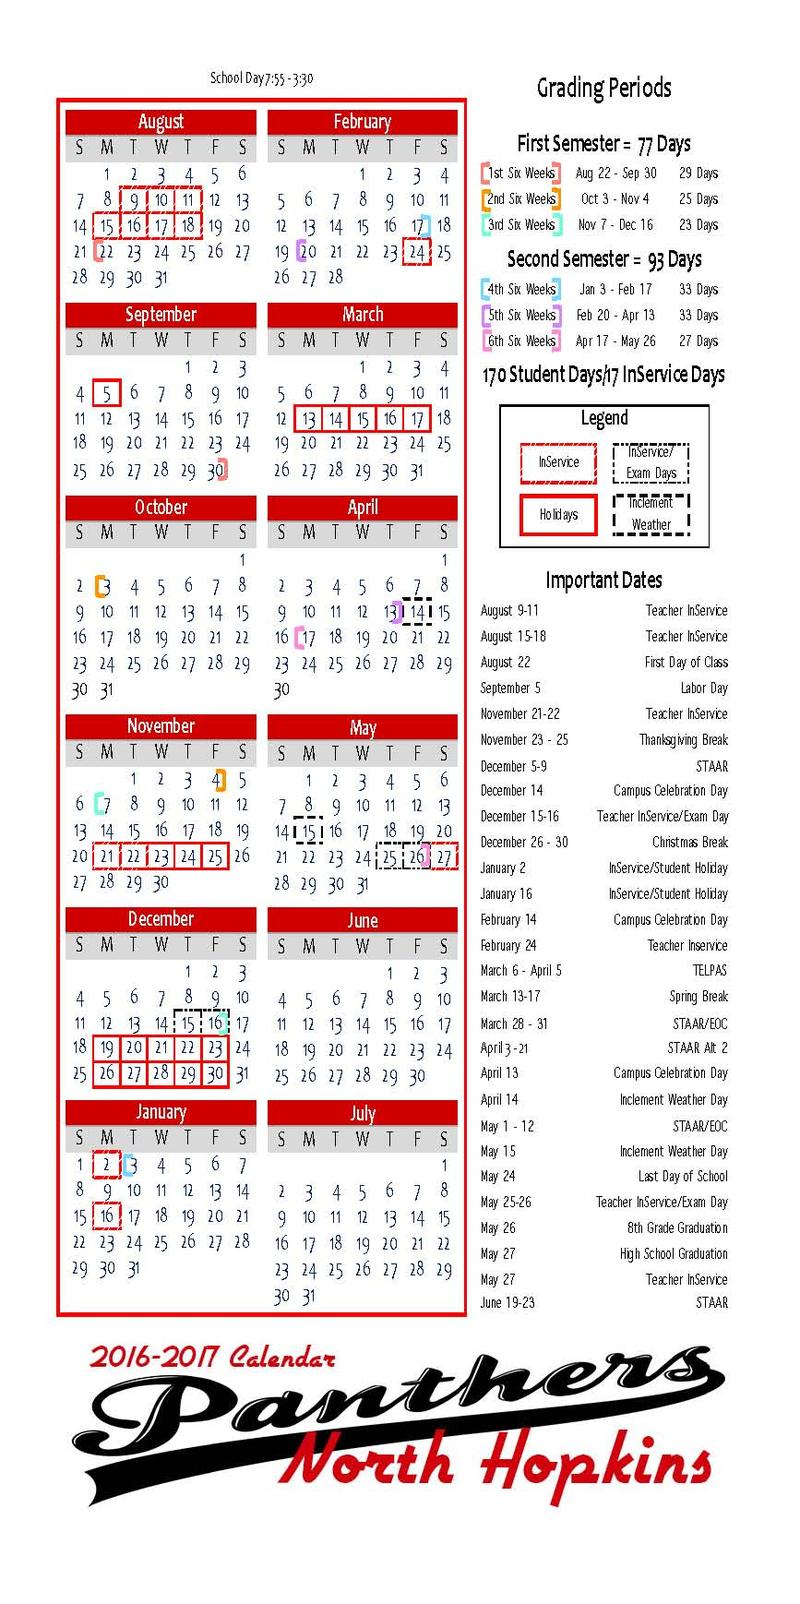 North Hopkins ISD releases upcoming school calendar.